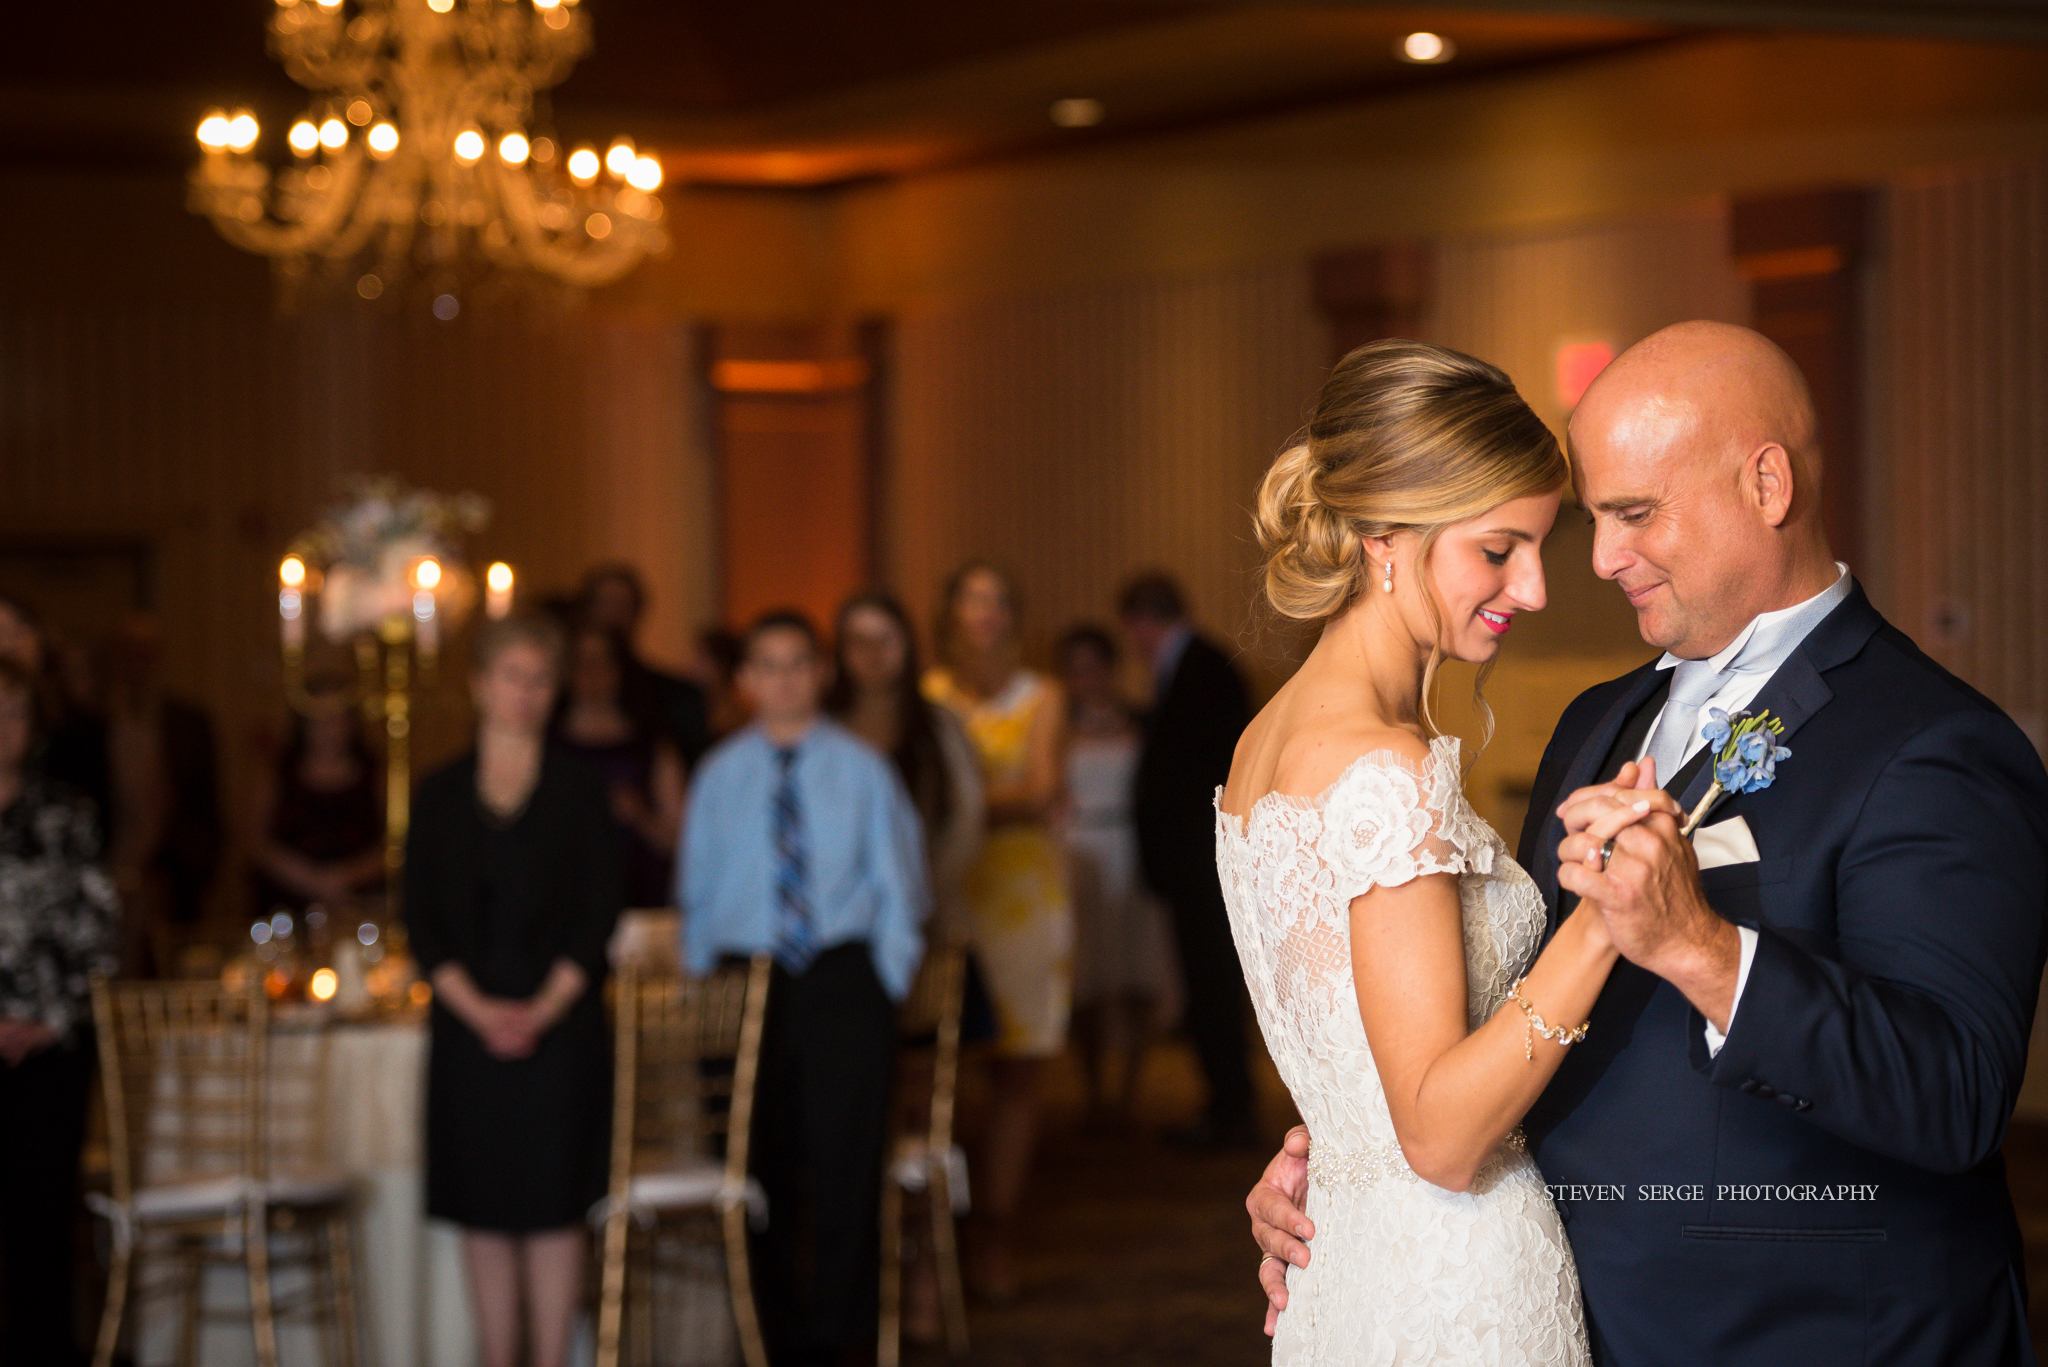 steph-scranton-wedding-steven-serge-photography-43.jpg